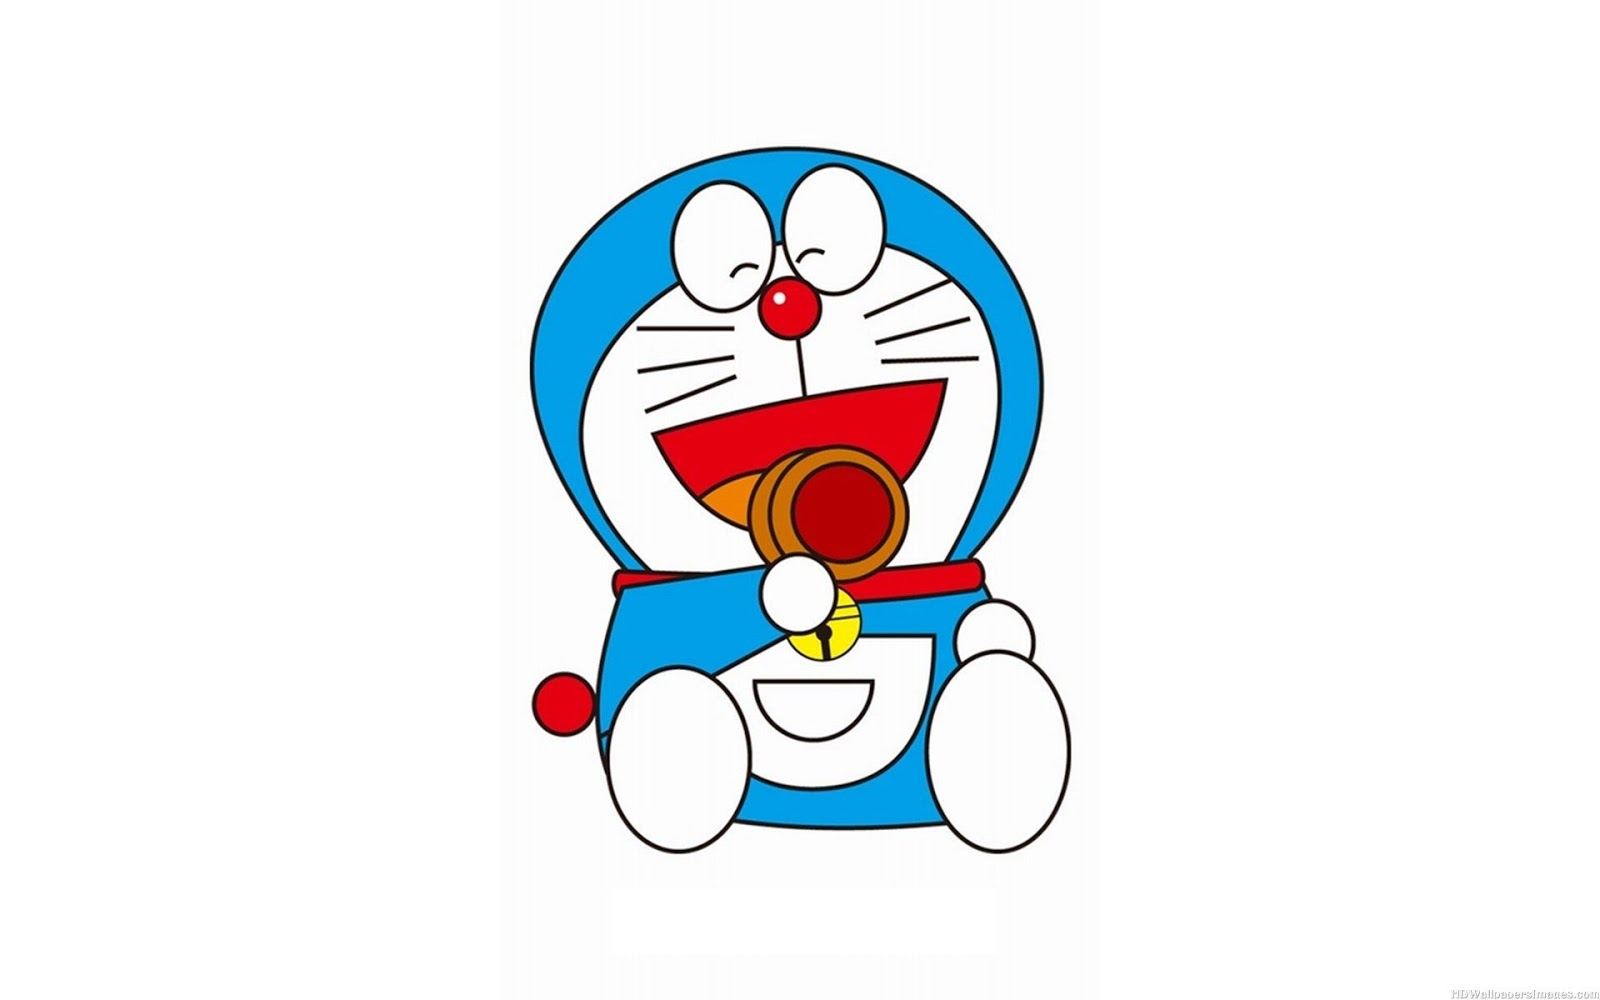 Letest Doraemon HD wallpapers Get free high definition cartoon desktop wallpapers  Images of love